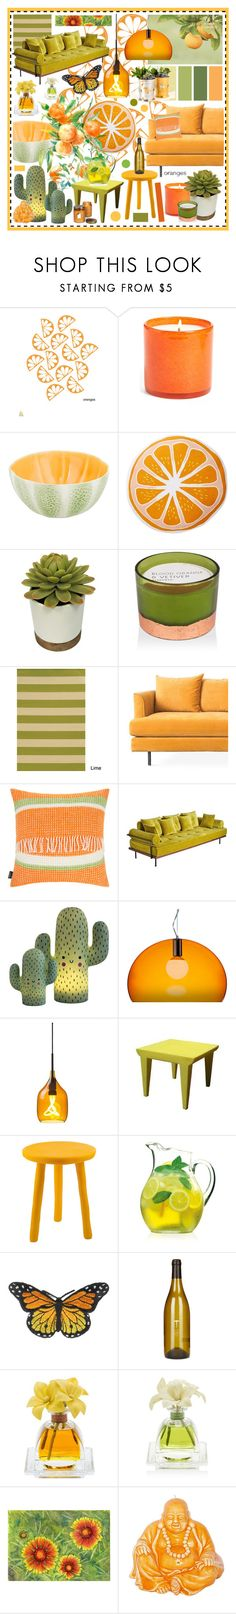 """Citrus"" by beanpod ❤ liked on Polyvore featuring interior, interiors, interior design, home, home decor, interior decorating, LAFCO, Bordallo Pinheiro, Nordstrom Rack and Paddywax"